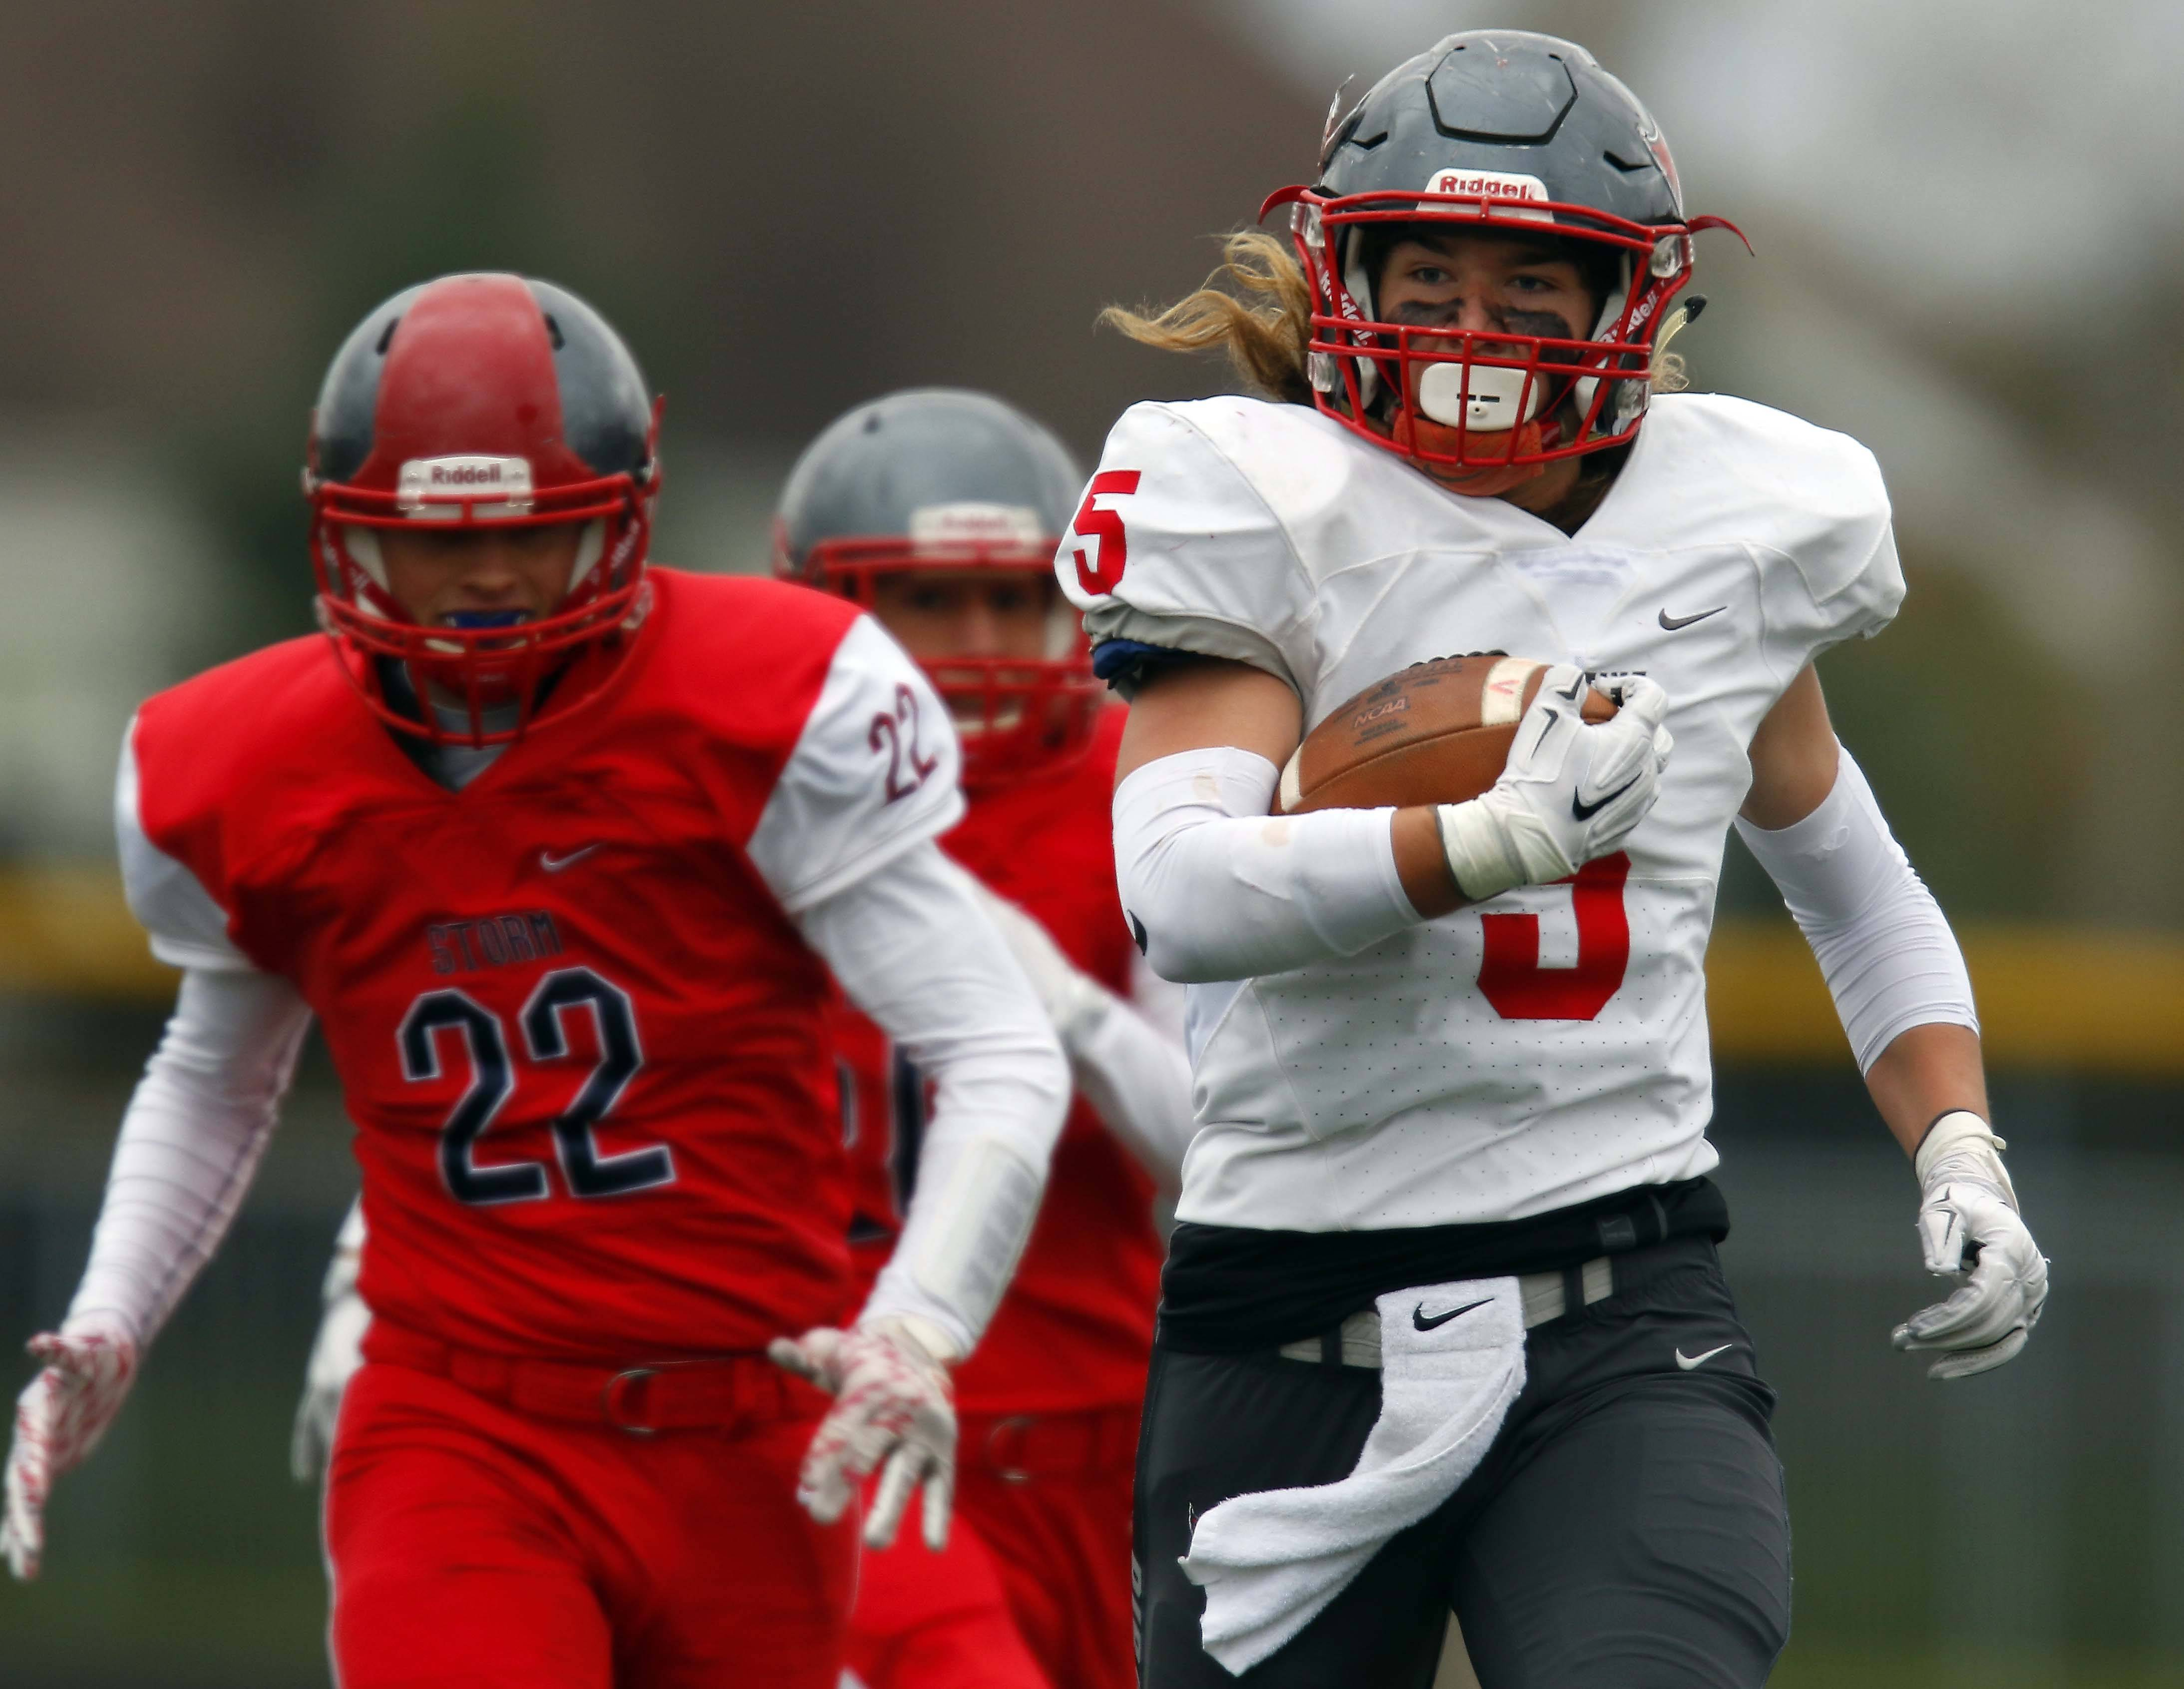 Palatine's Charlie Canty (5) moves up field Saturday during Palatine vs. South Elgin Class 8A football playoffs at Millennium Field in Streamwood.